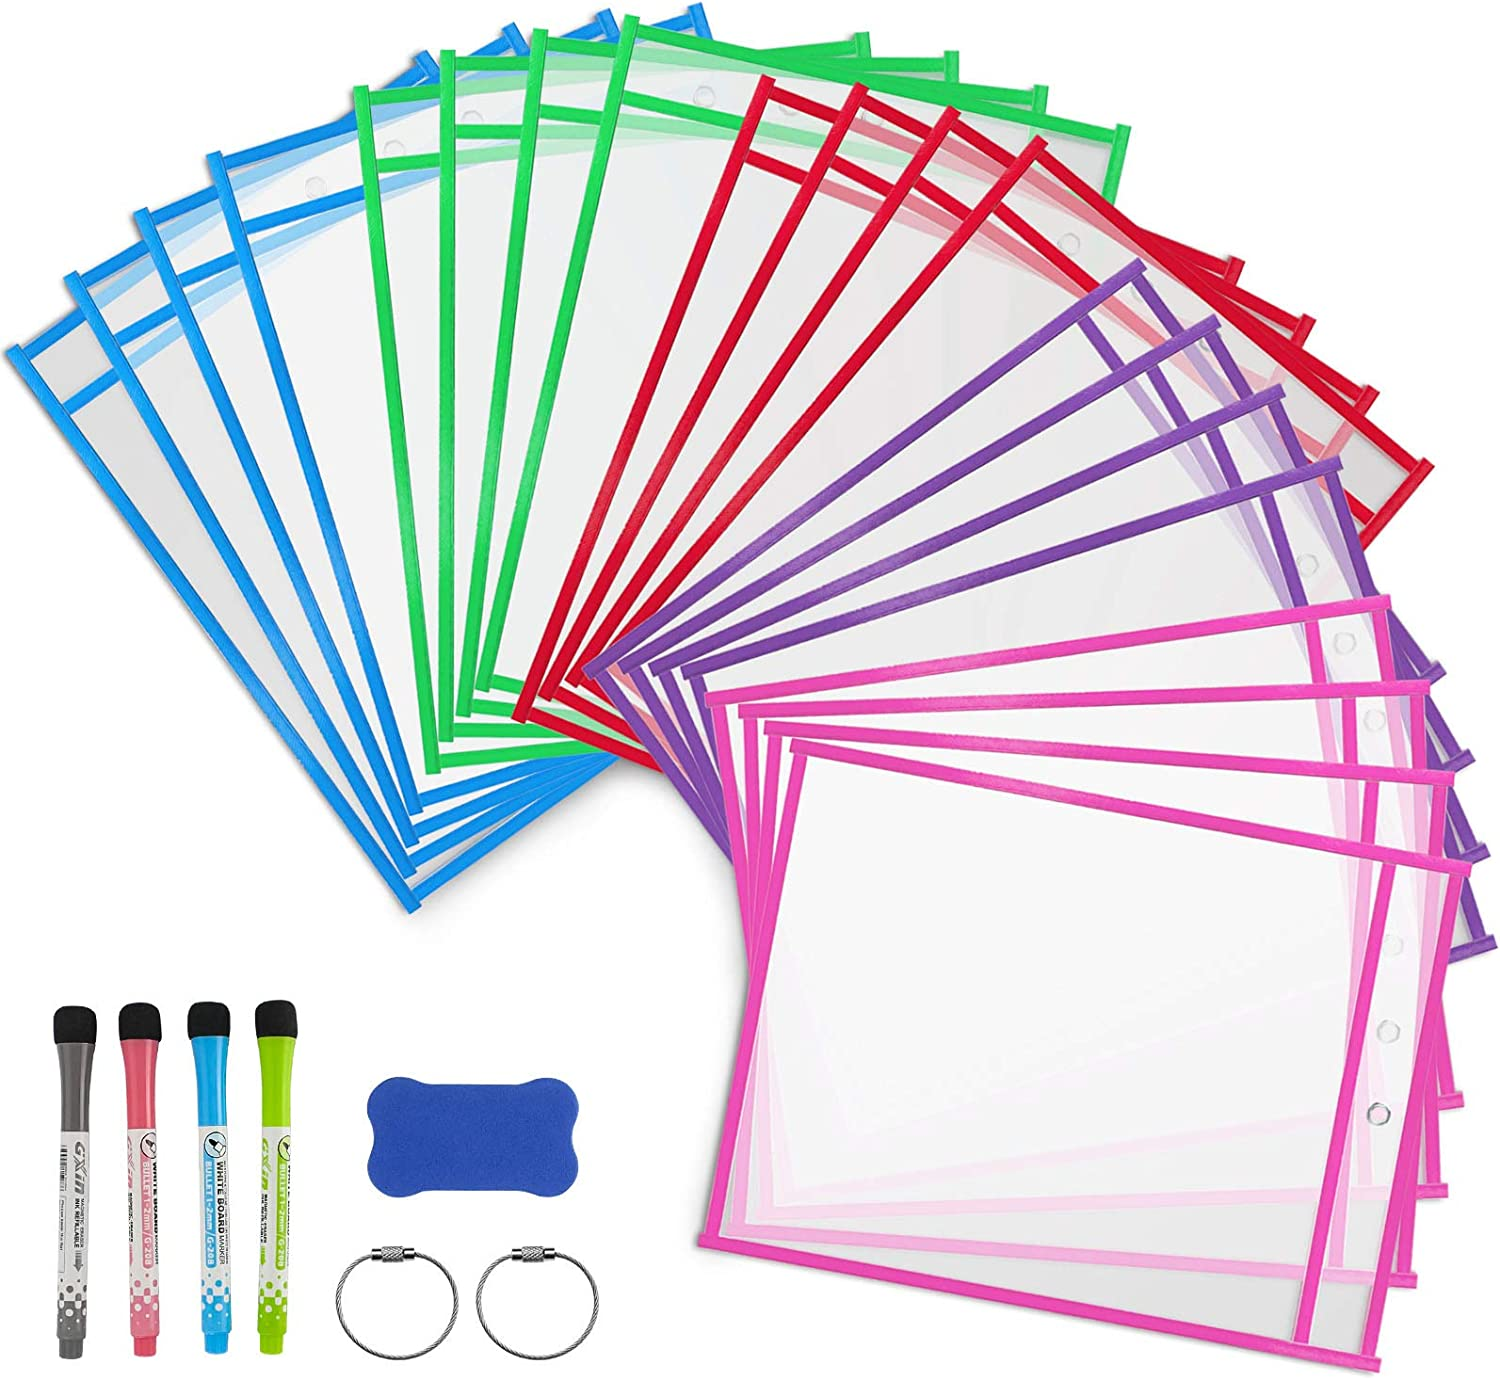 DUOFIRE Dry Erase Pockets Sleeves Reusable Houston Mall 20 She Pack specialty shop